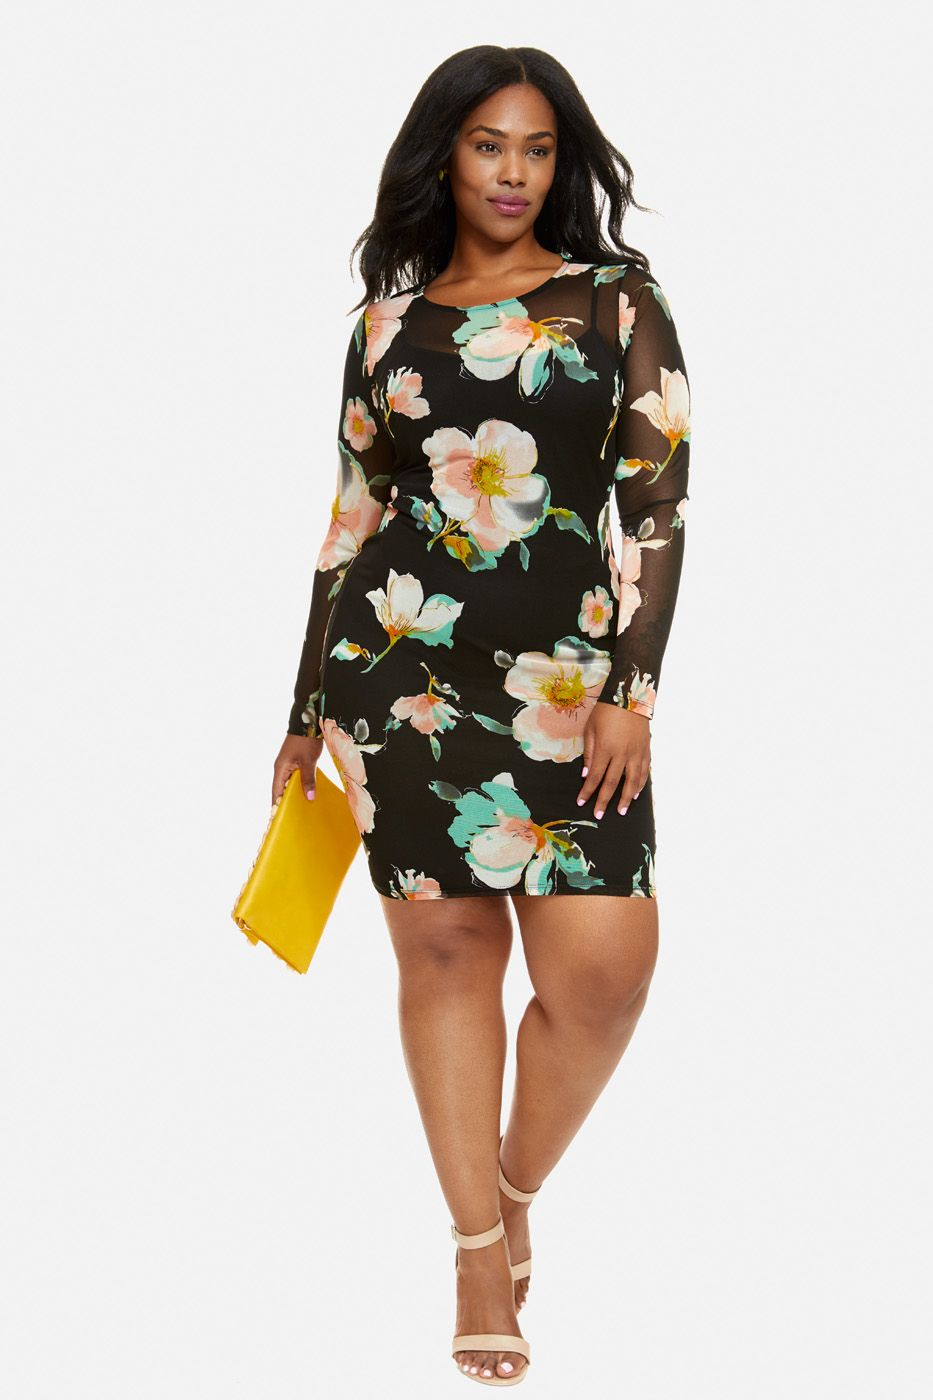 Plus size giselle floral mesh bodycon dress me guta pinterest